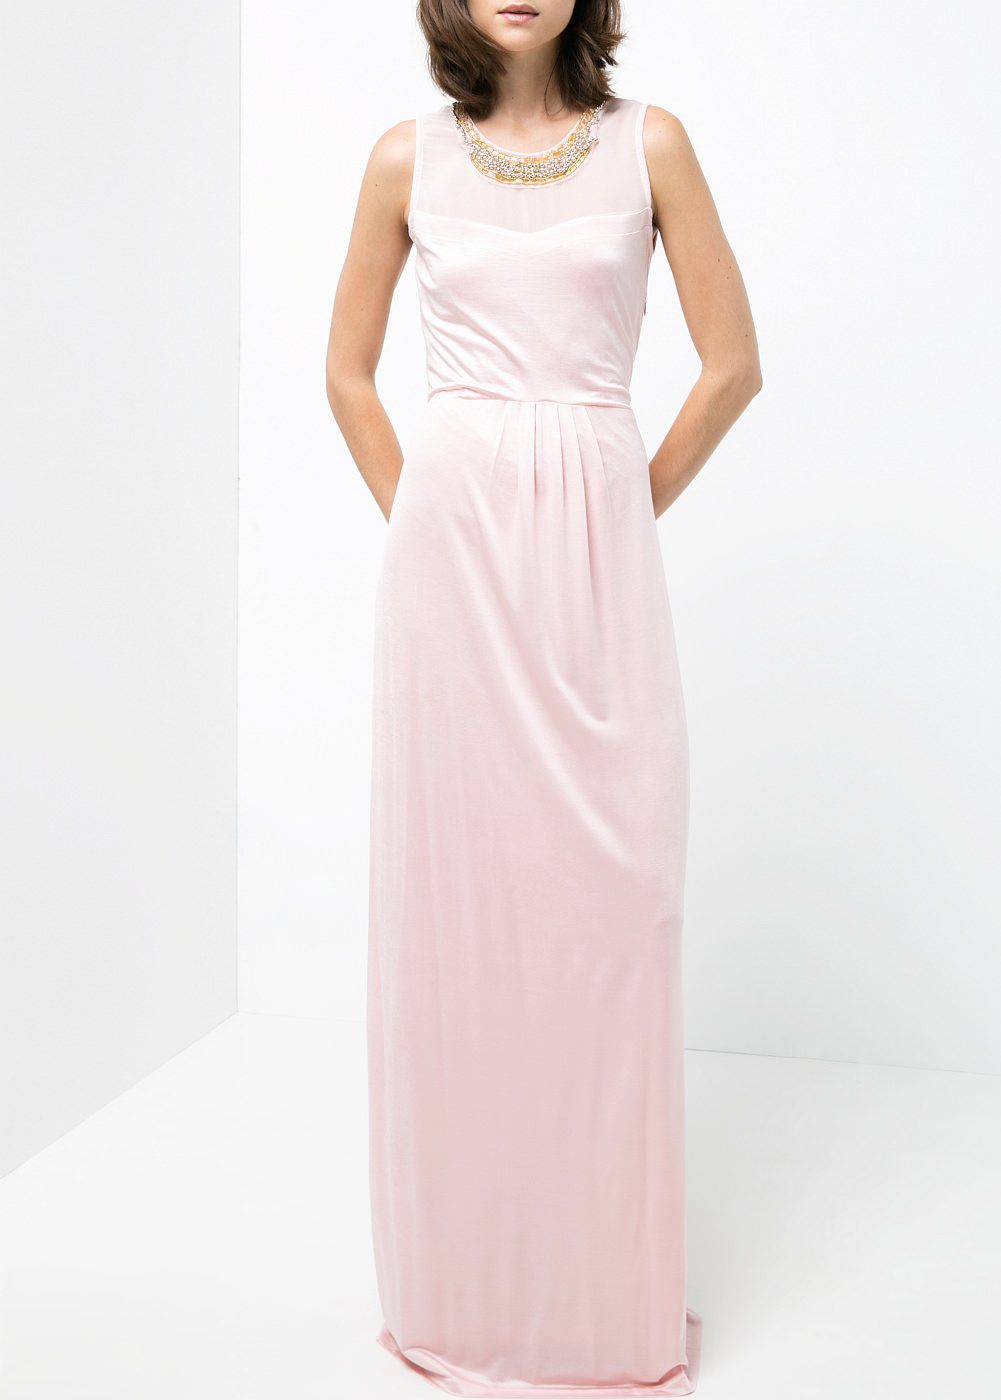 7 Affordable Pink Long Dresses To Wear To A Wedding Laiamagazine